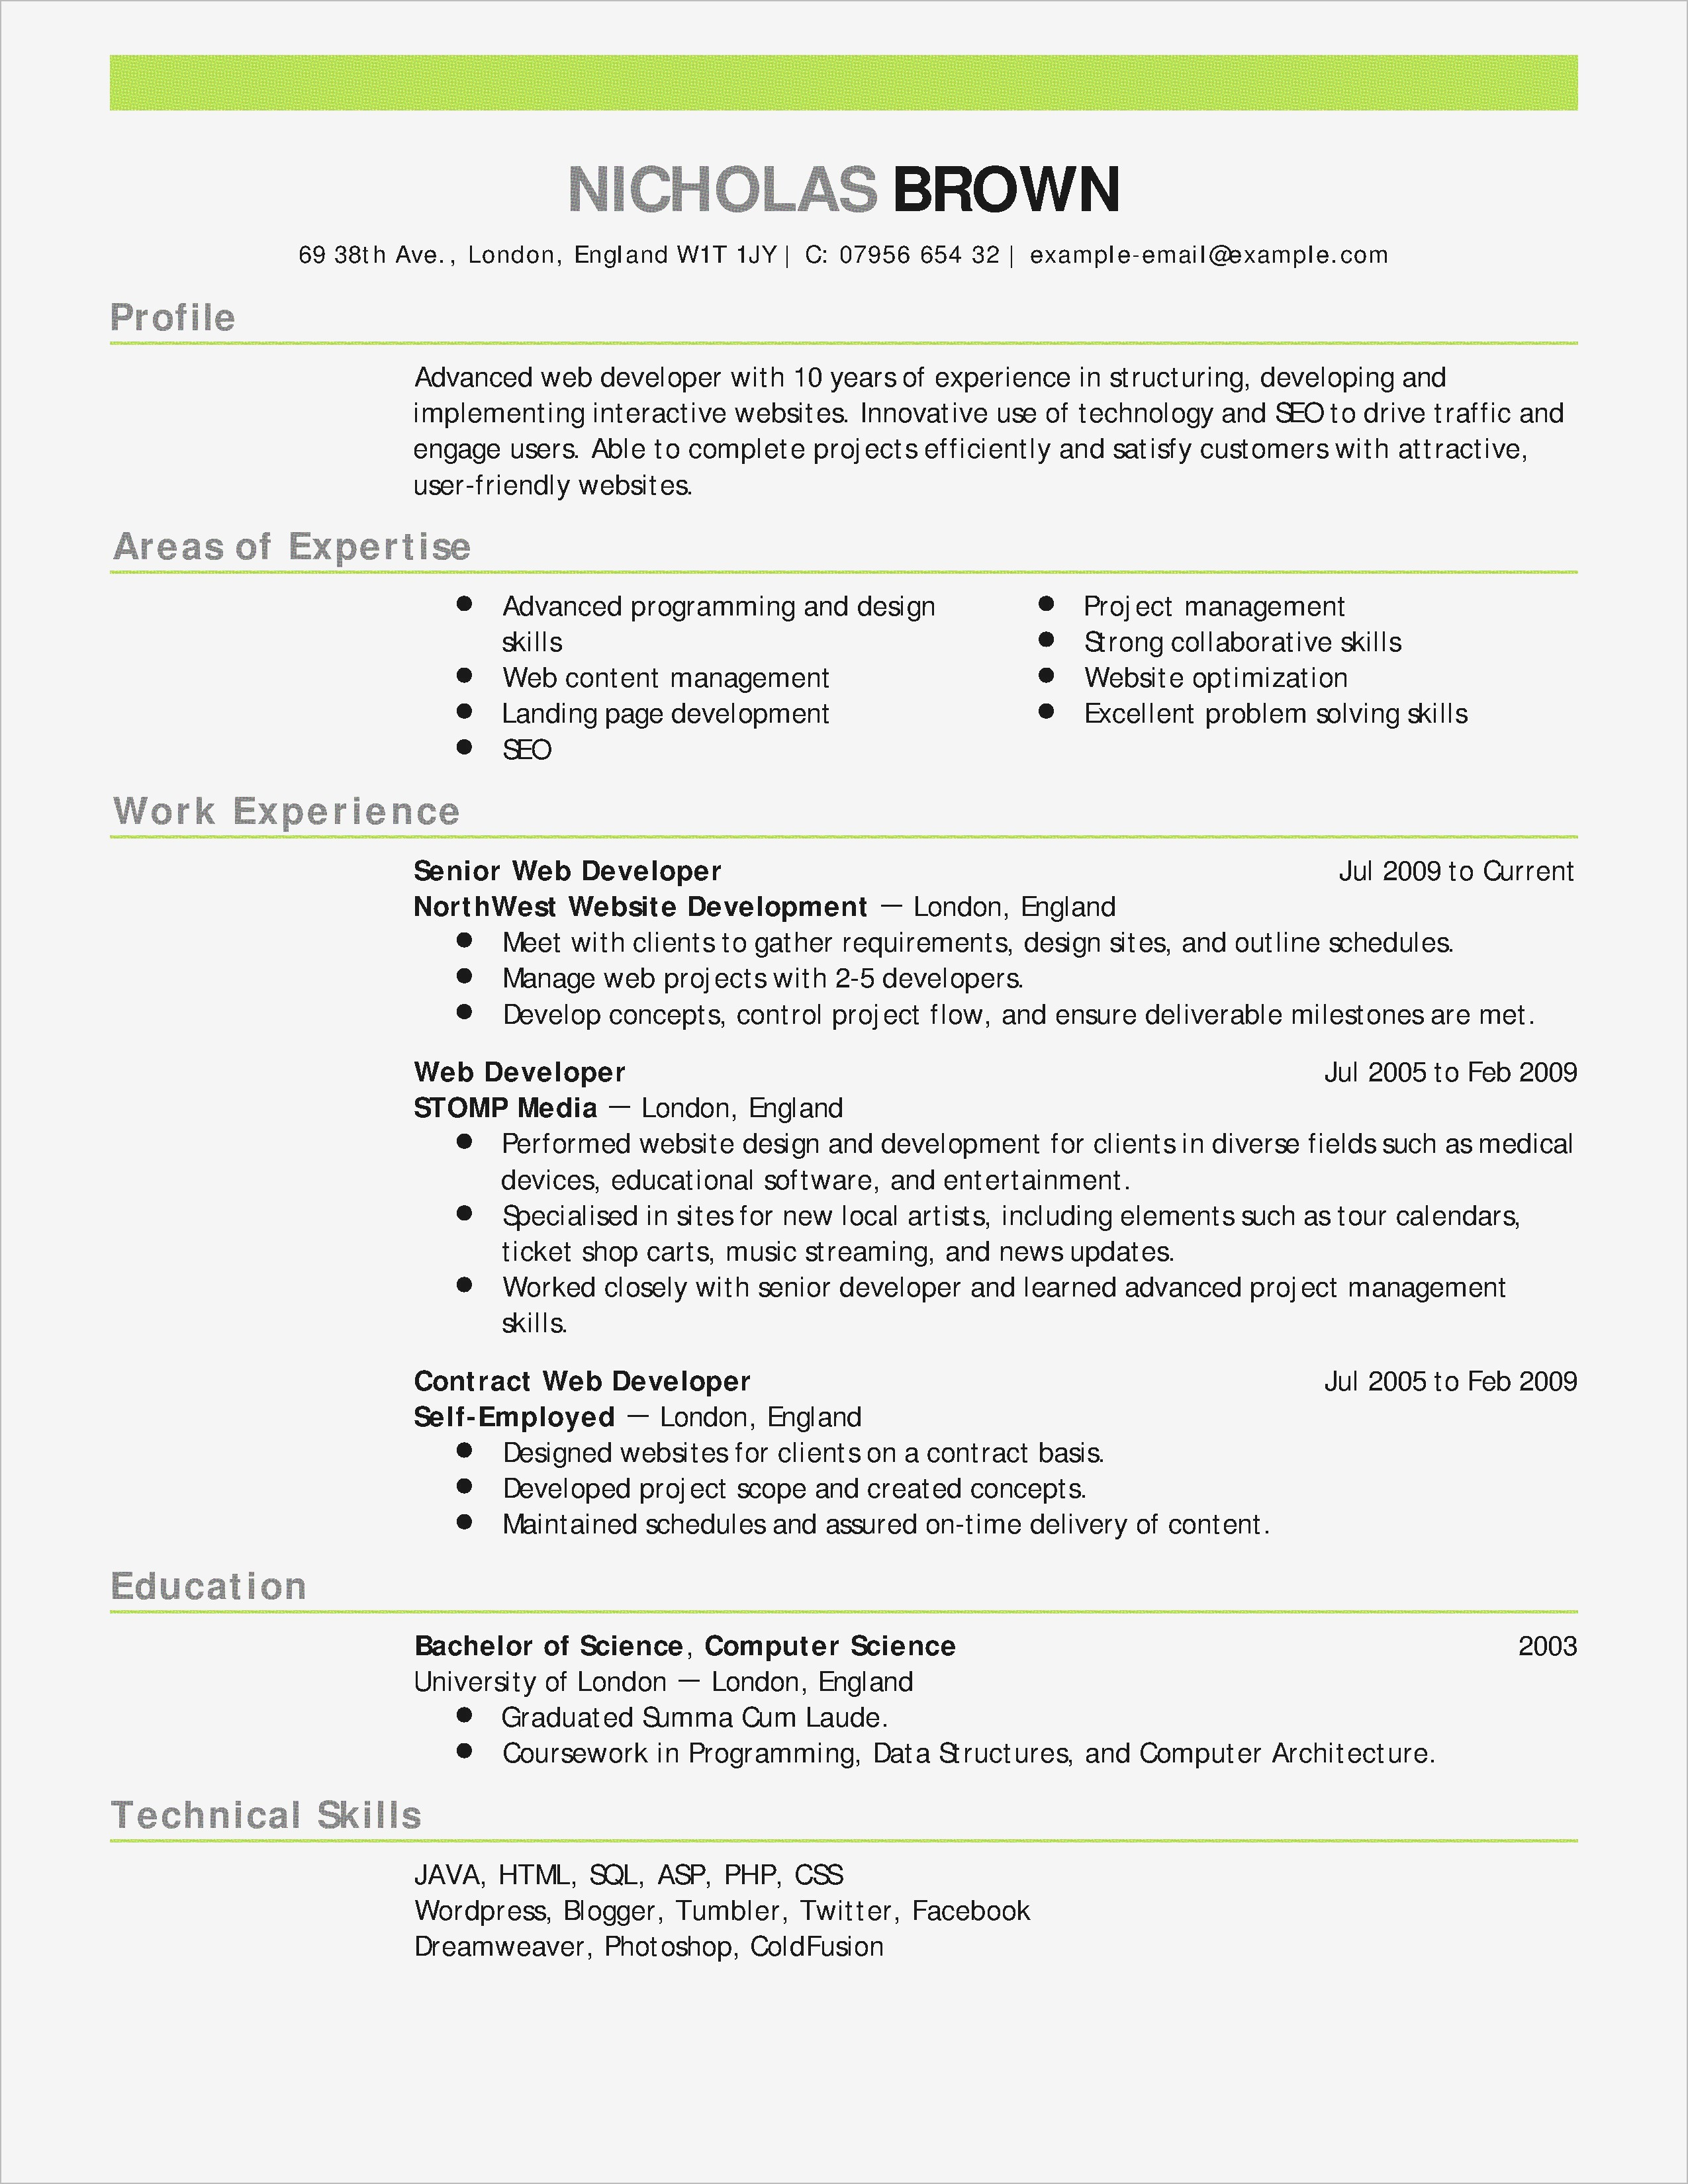 Template for Cover Letter for Teaching Position - Cover Letter for Teaching Position Pdf format